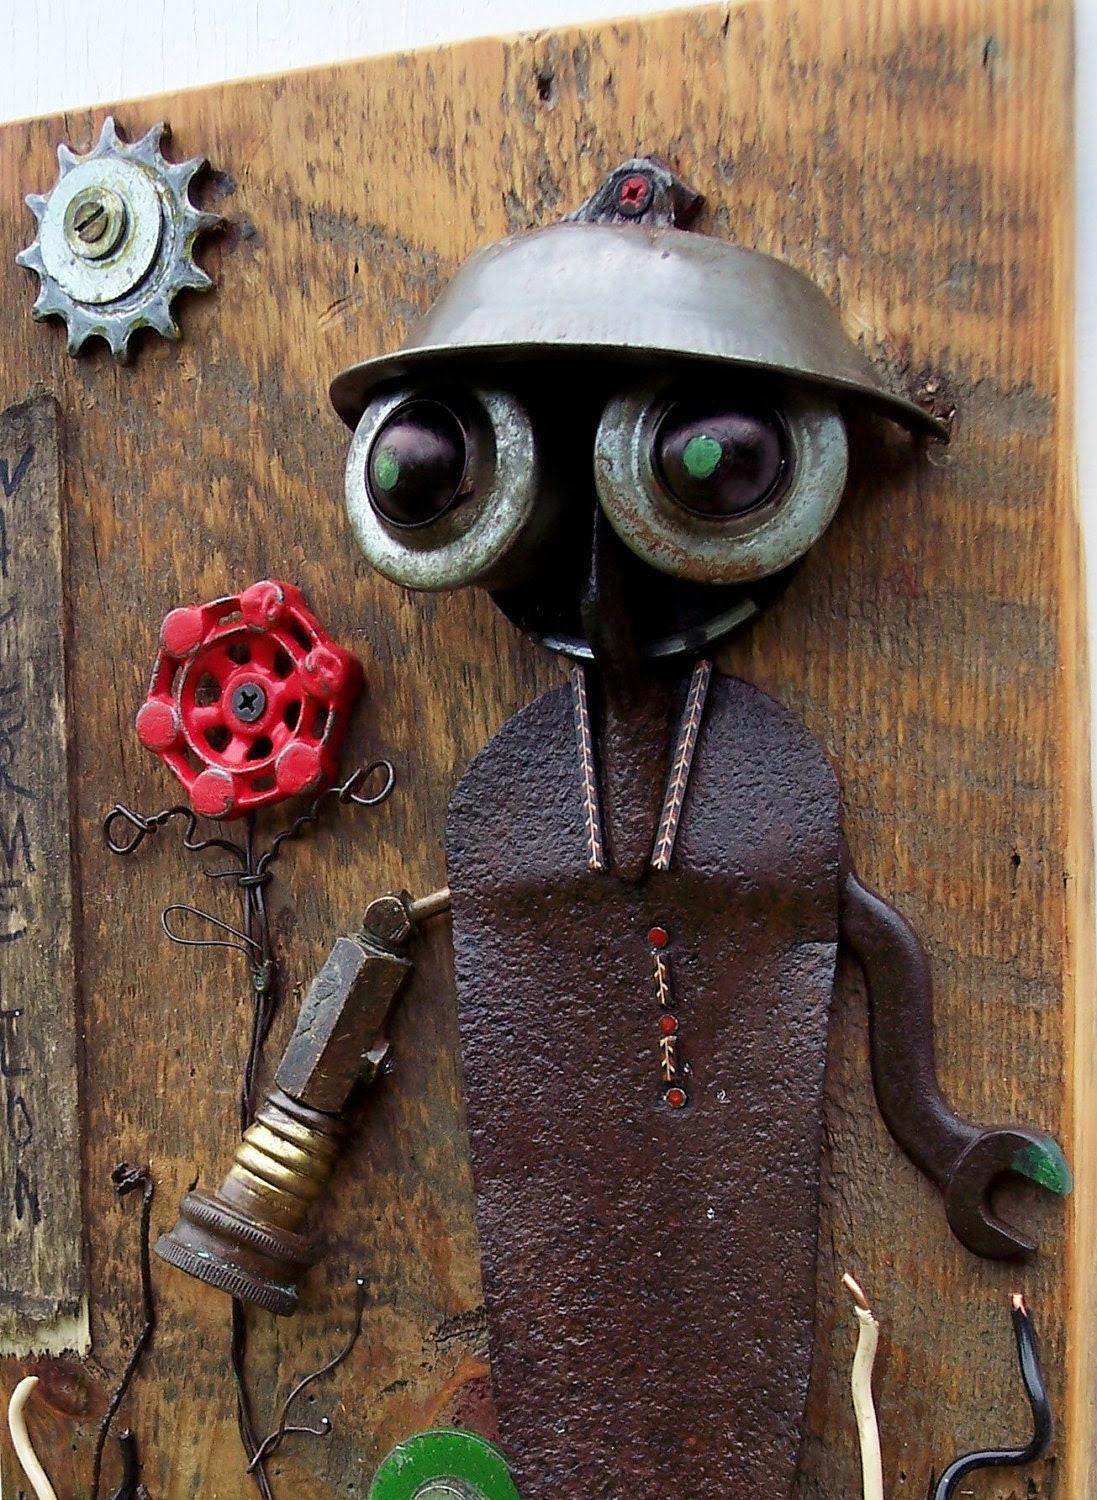 Robot art assemblage THE GARDENER Workman series number two..Salvage art